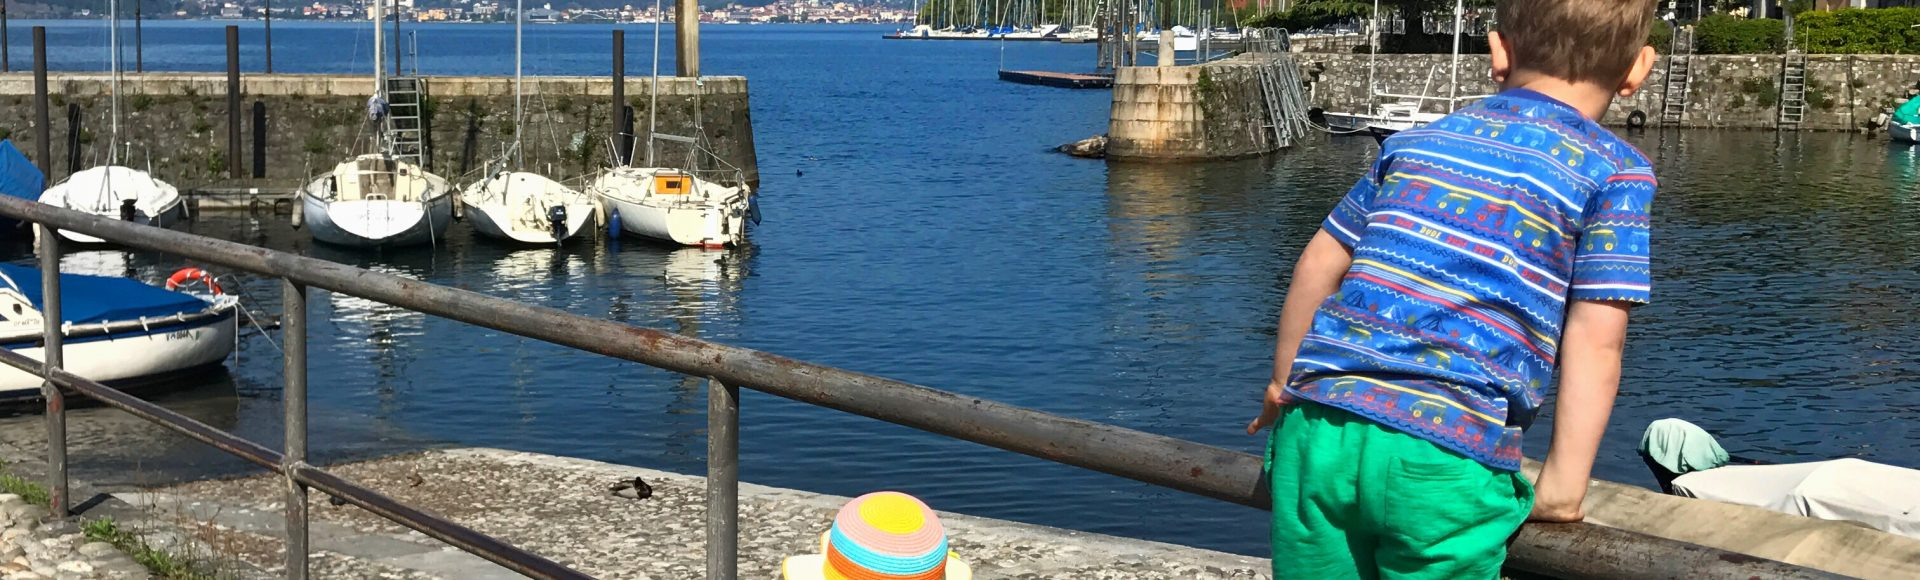 Brilliant kids' club in Italy – guest post.